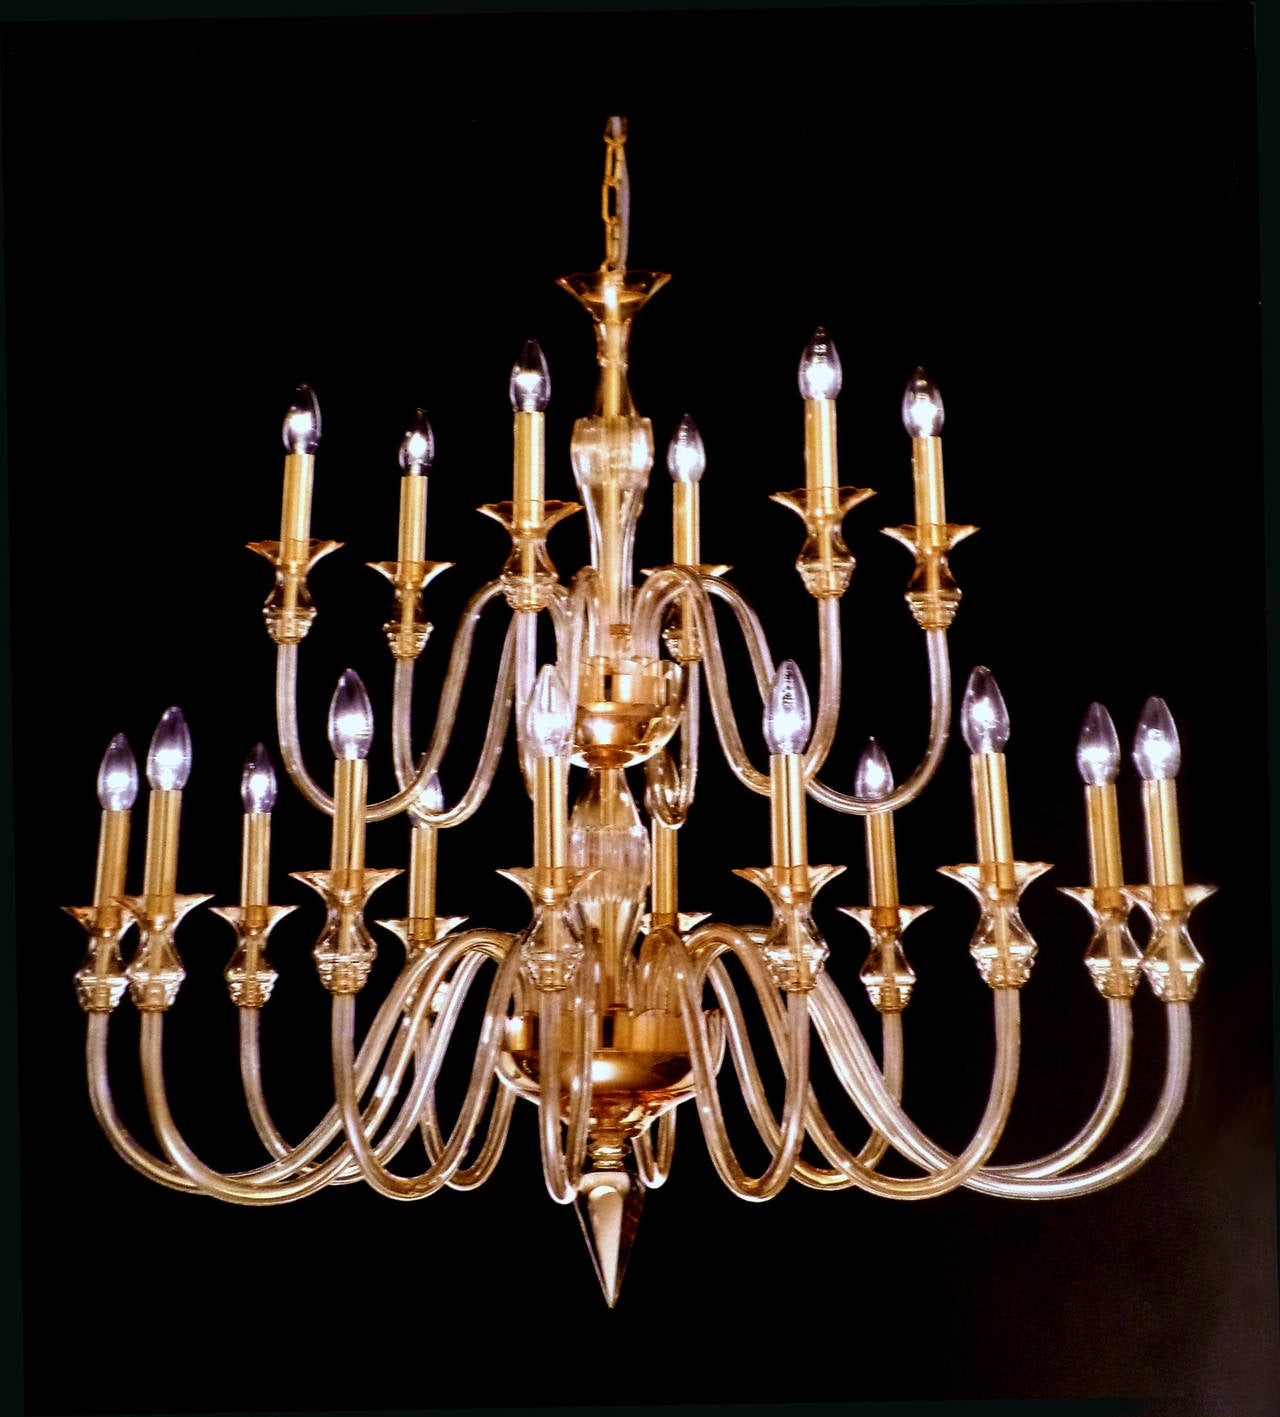 Elegant, sober double-level Venetian glass chandelier or pendant in the modern neoclassical tradition composed of twelve lower arms and six upper arms and made of amber glass with brass internal parts.